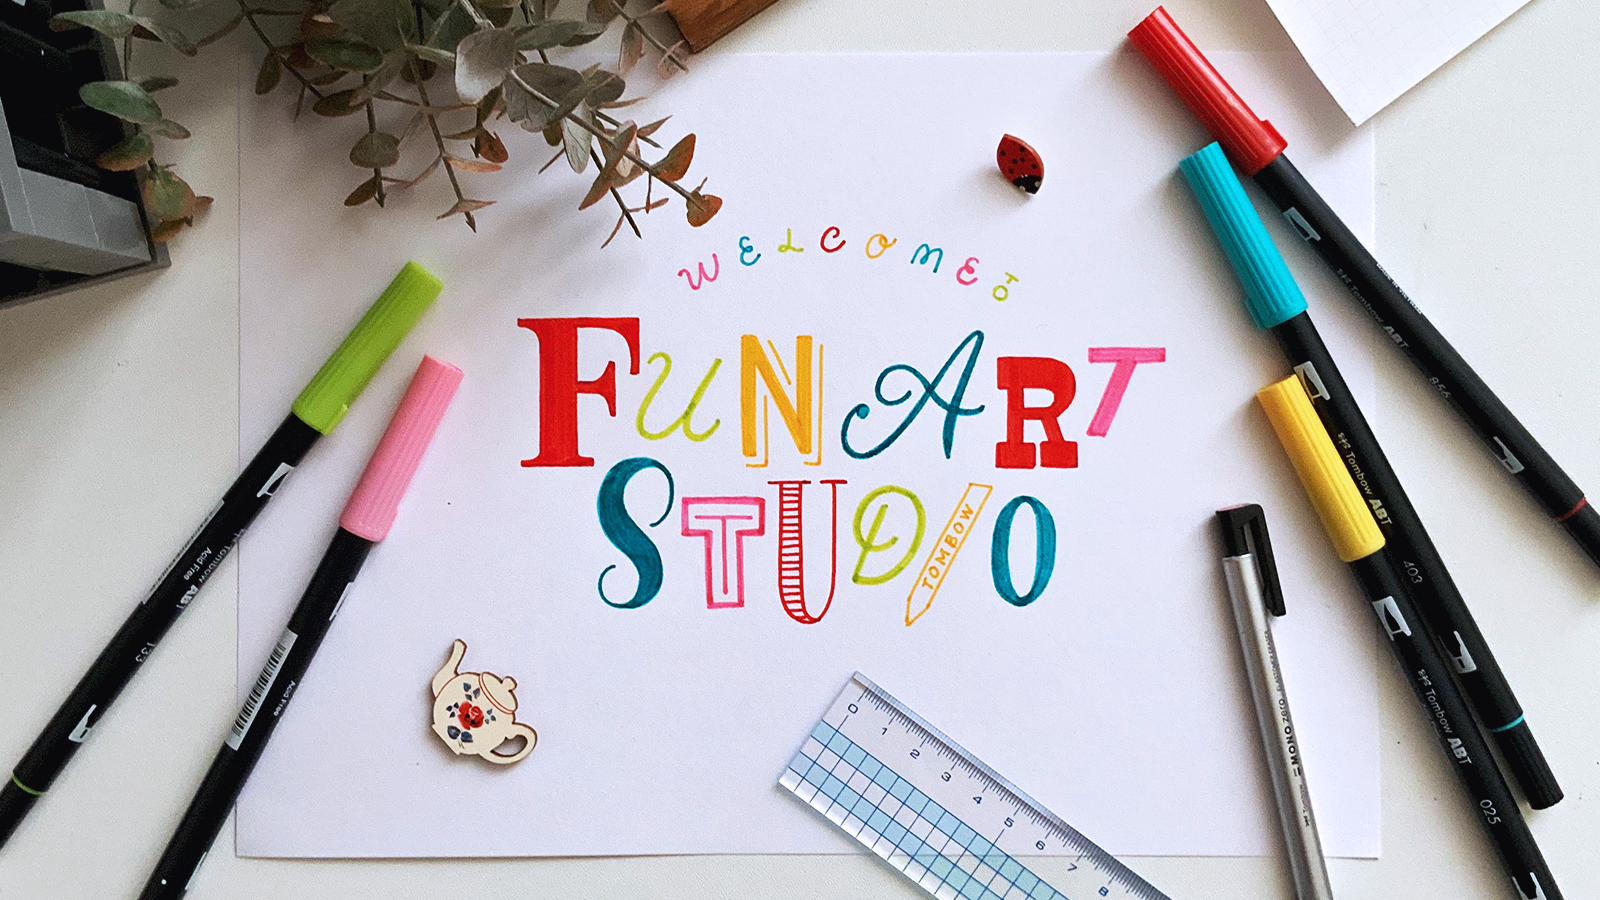 Fun Art Studio